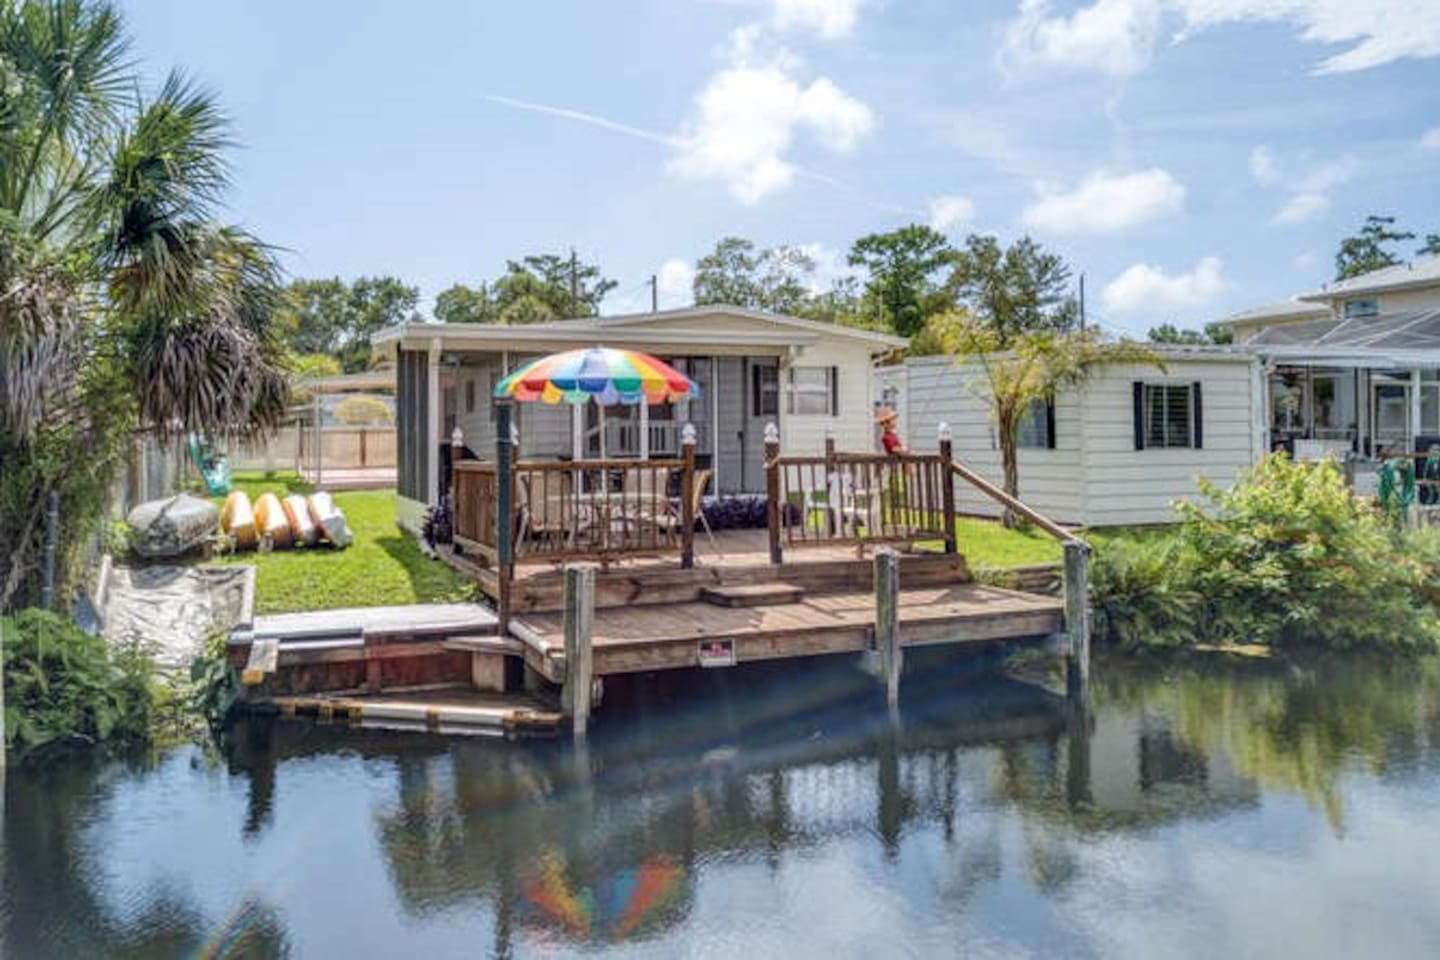 WELCOME TO OUR WATERFRONT RETREAT IN WEEKI WACHEE